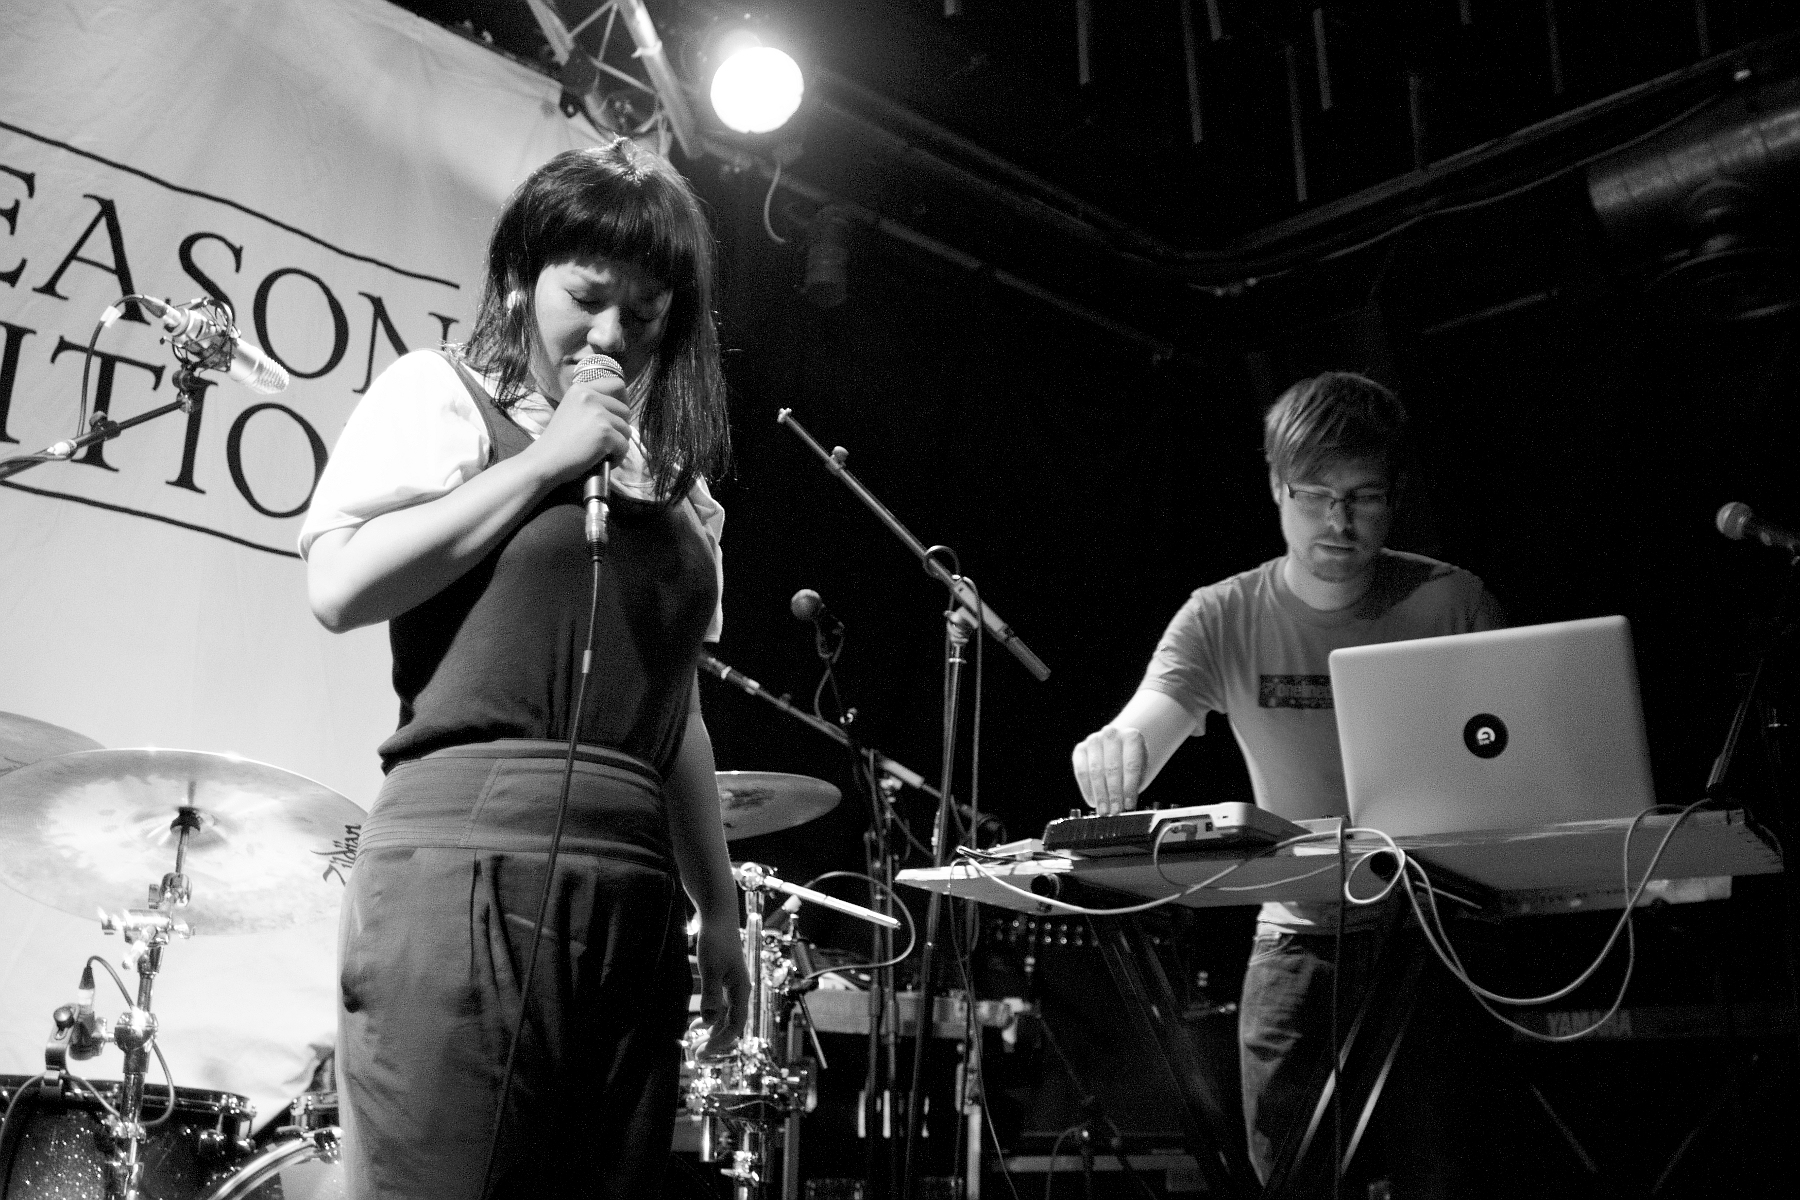 Ayu Okakita, Chris Amblin, Keyboard, Laptop, B&W, Nedry, Hoxton Square Bar & Kitchen, London